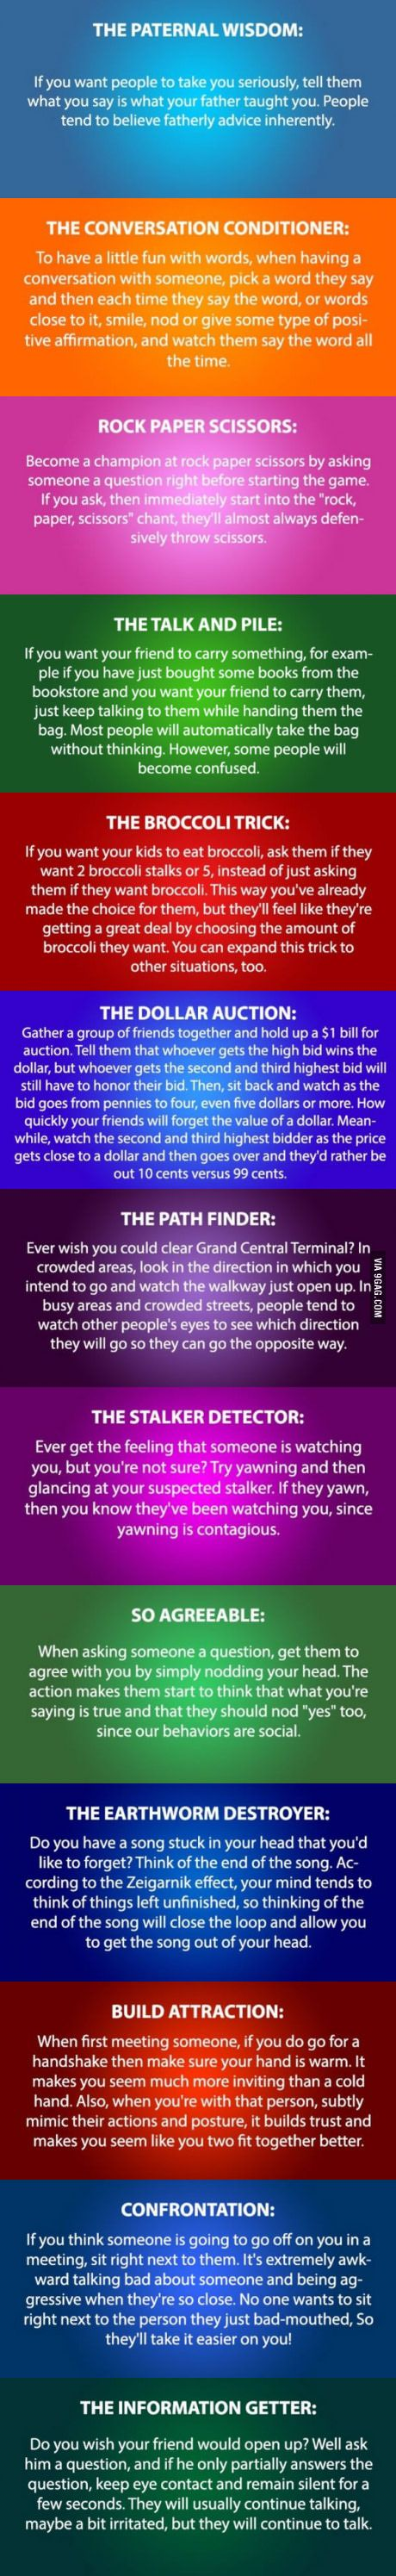 13 Cool Psychology Tricks You Need To Try More